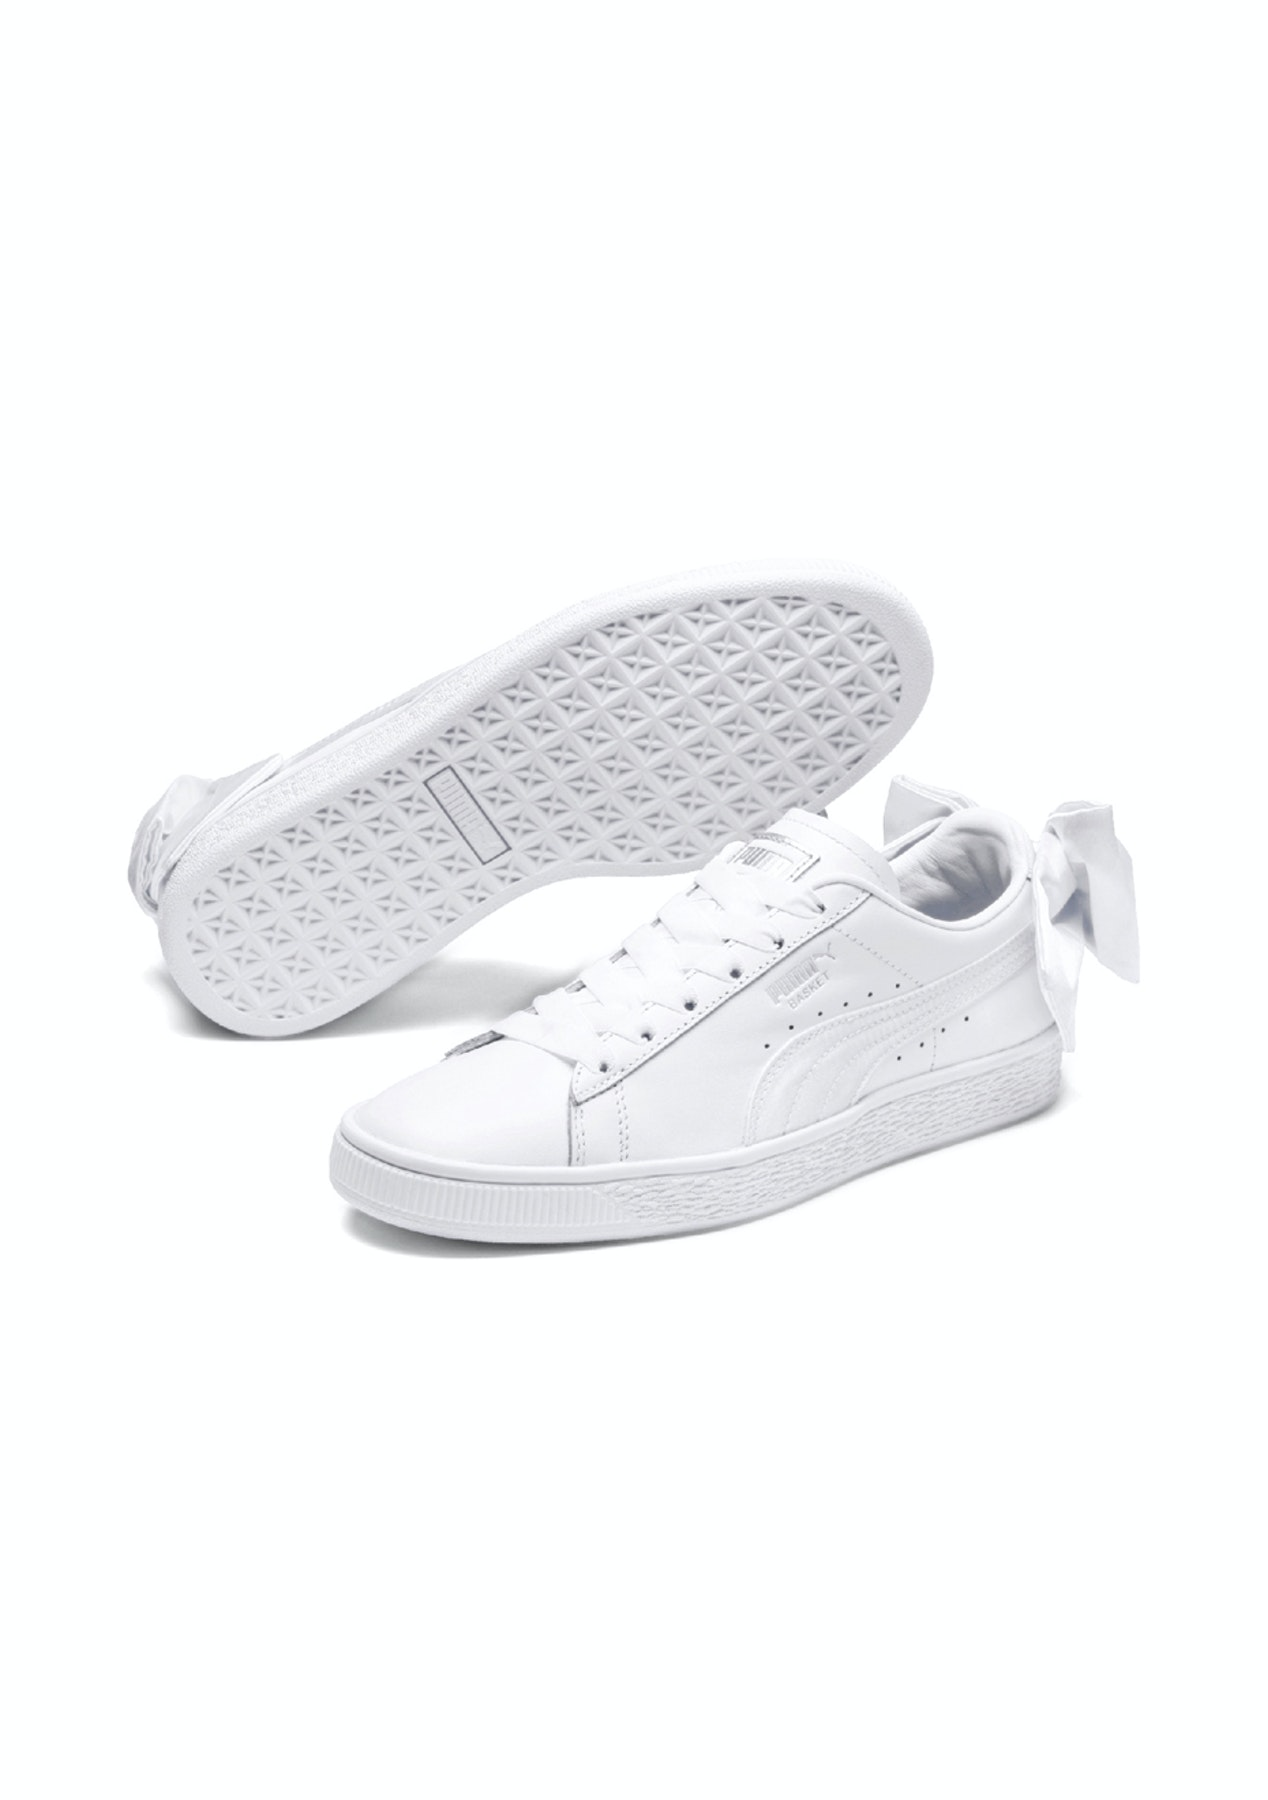 d3ee0fb09ab4 Puma Womens - Basket Bow - White - All Shoes  60 - Onceit